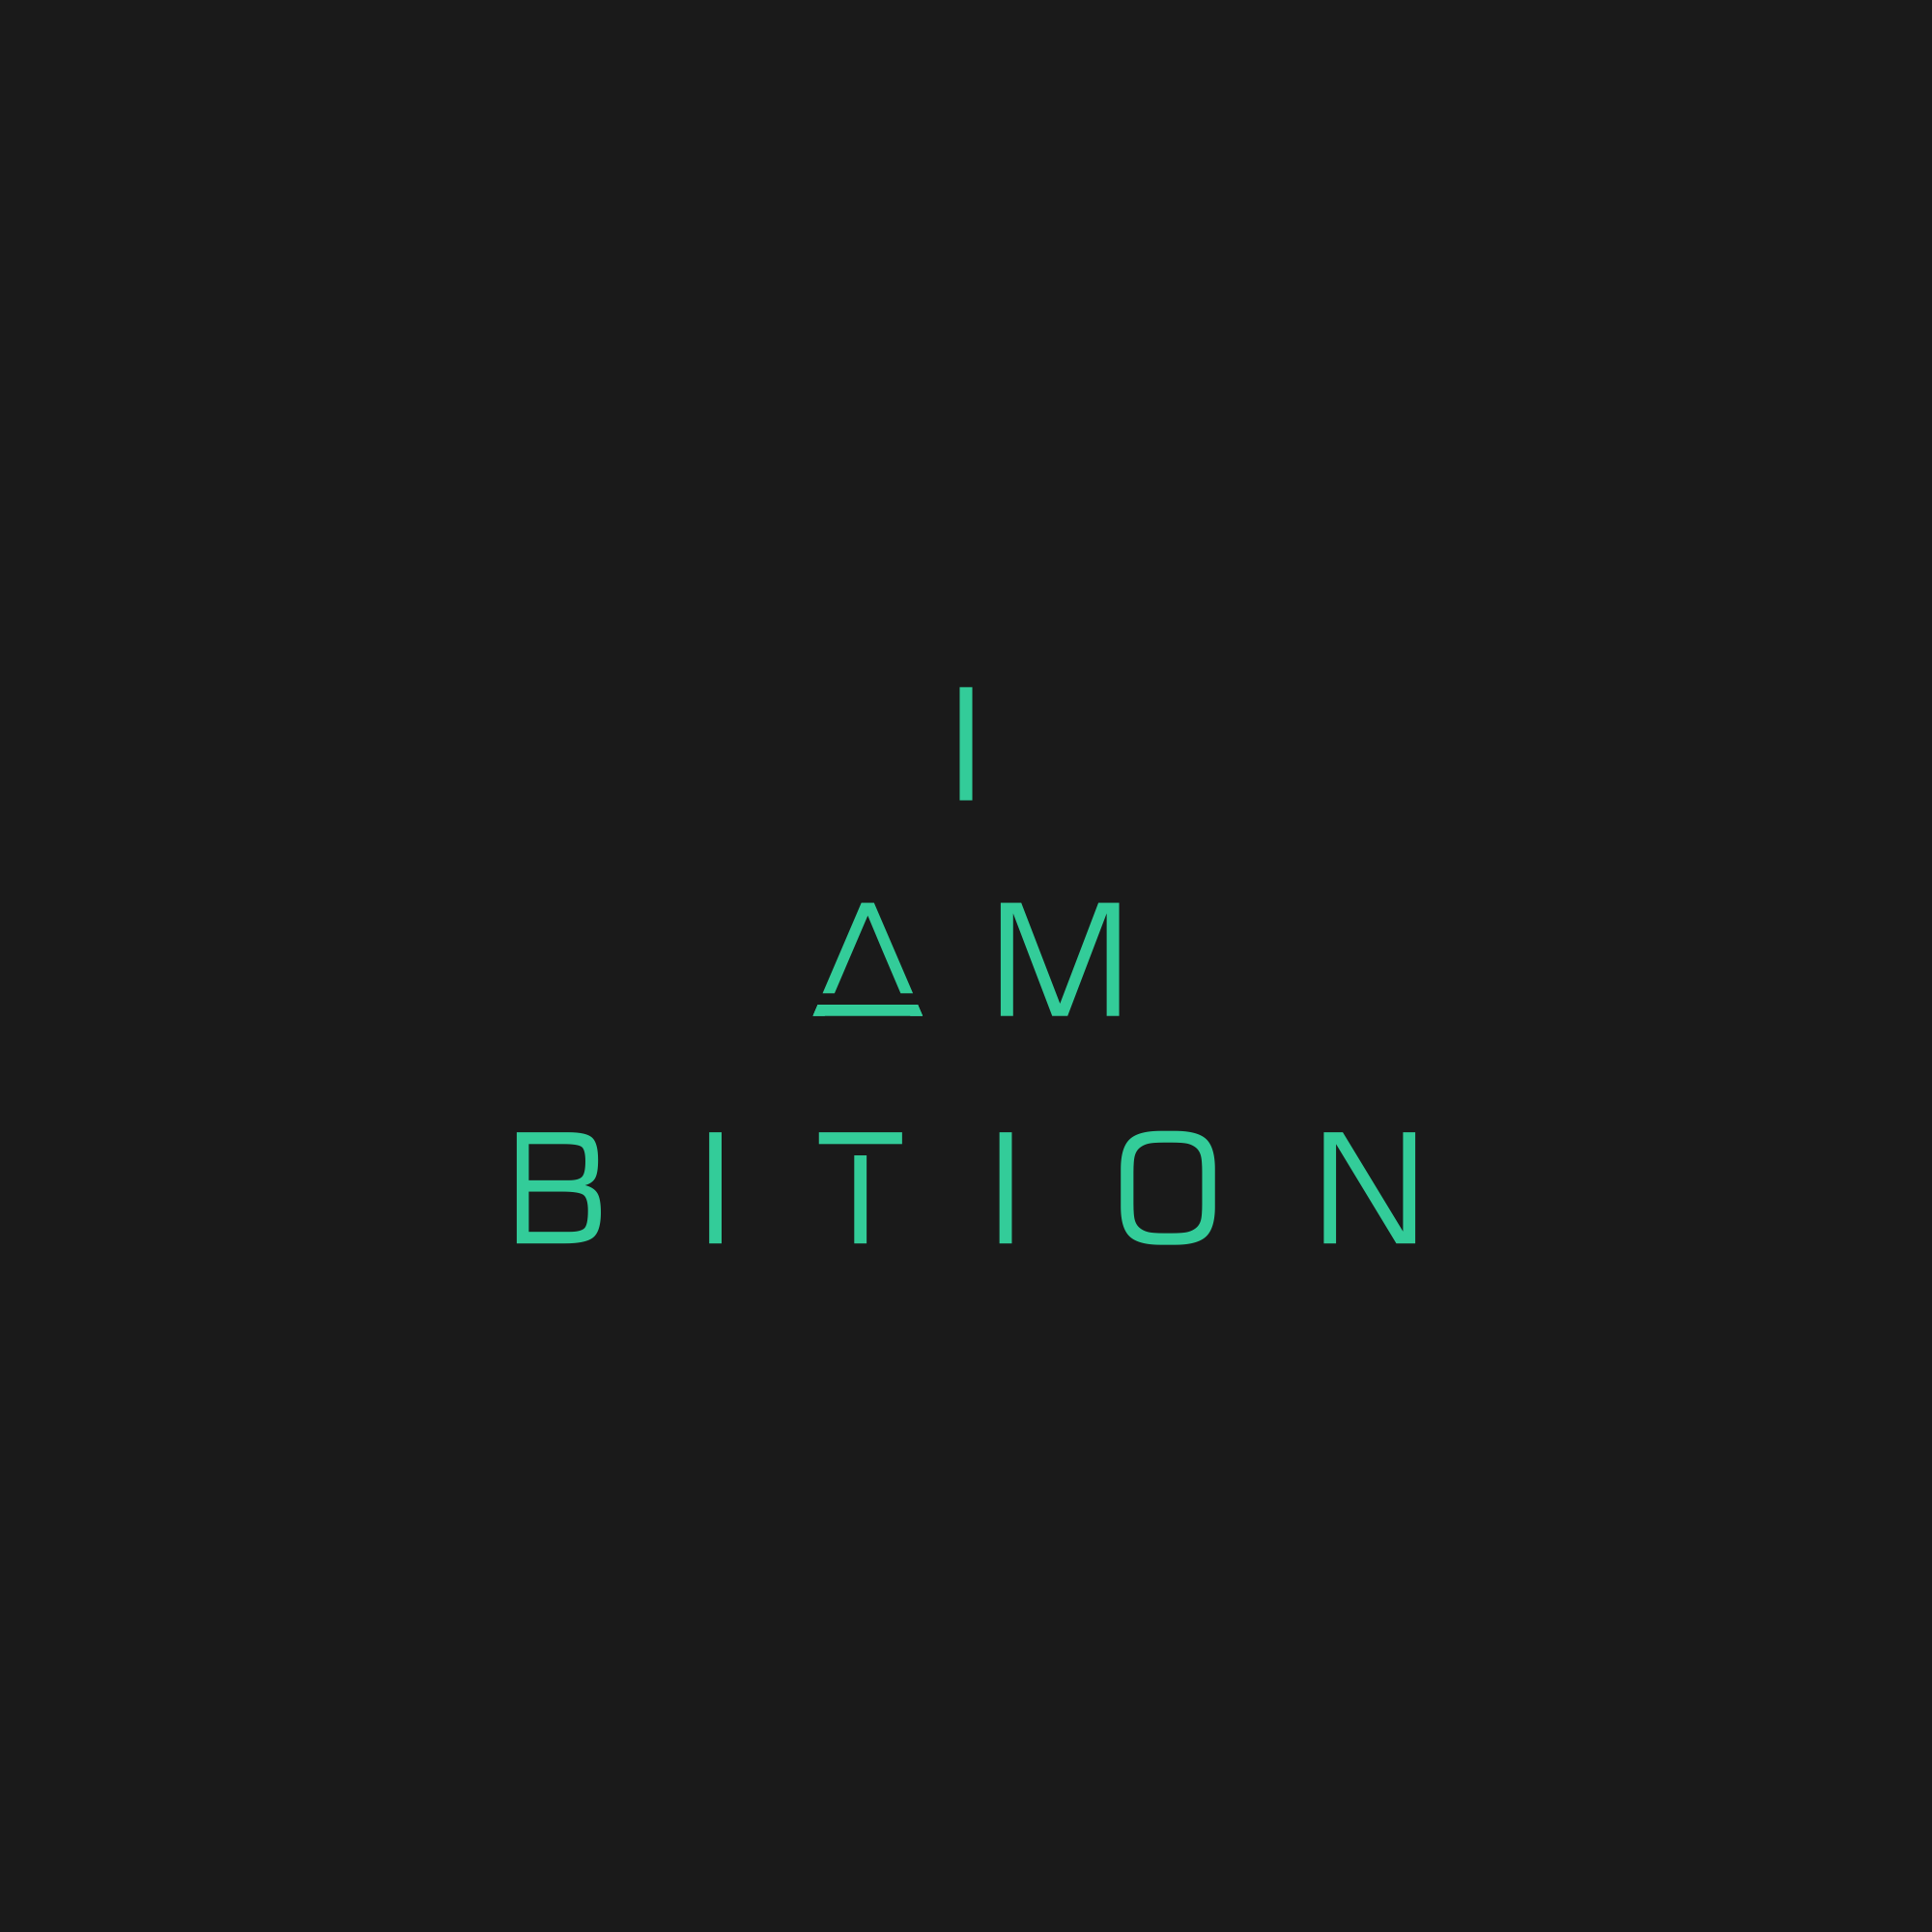 Motive people to have AMBTN and stop BCHN! Ambition vs Ambichin - let's see your most inspirational